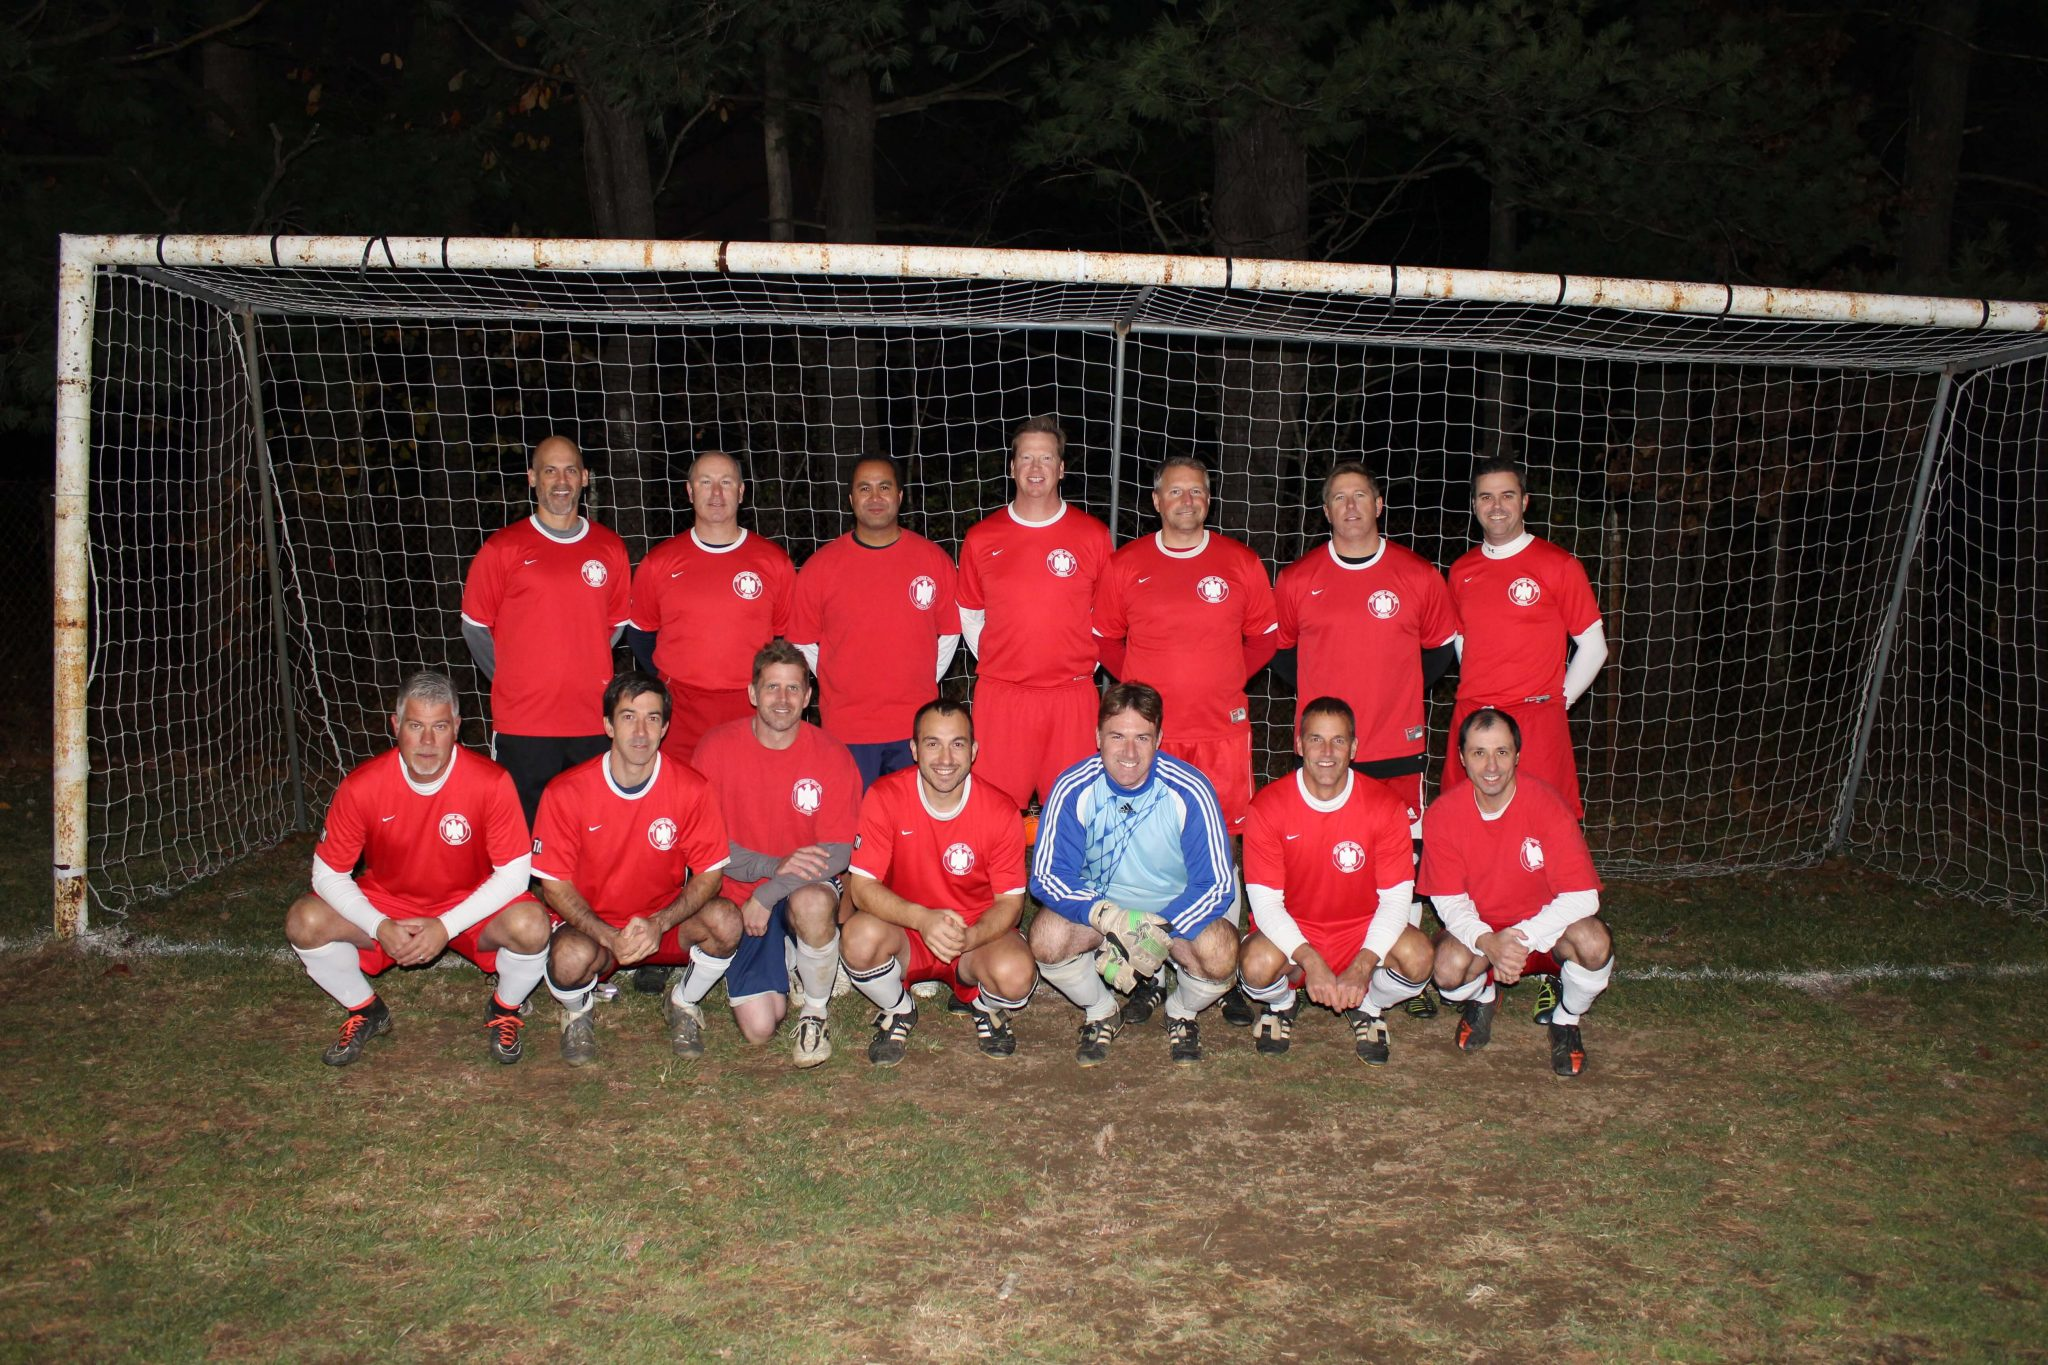 Men's Over 40 Soccer Team